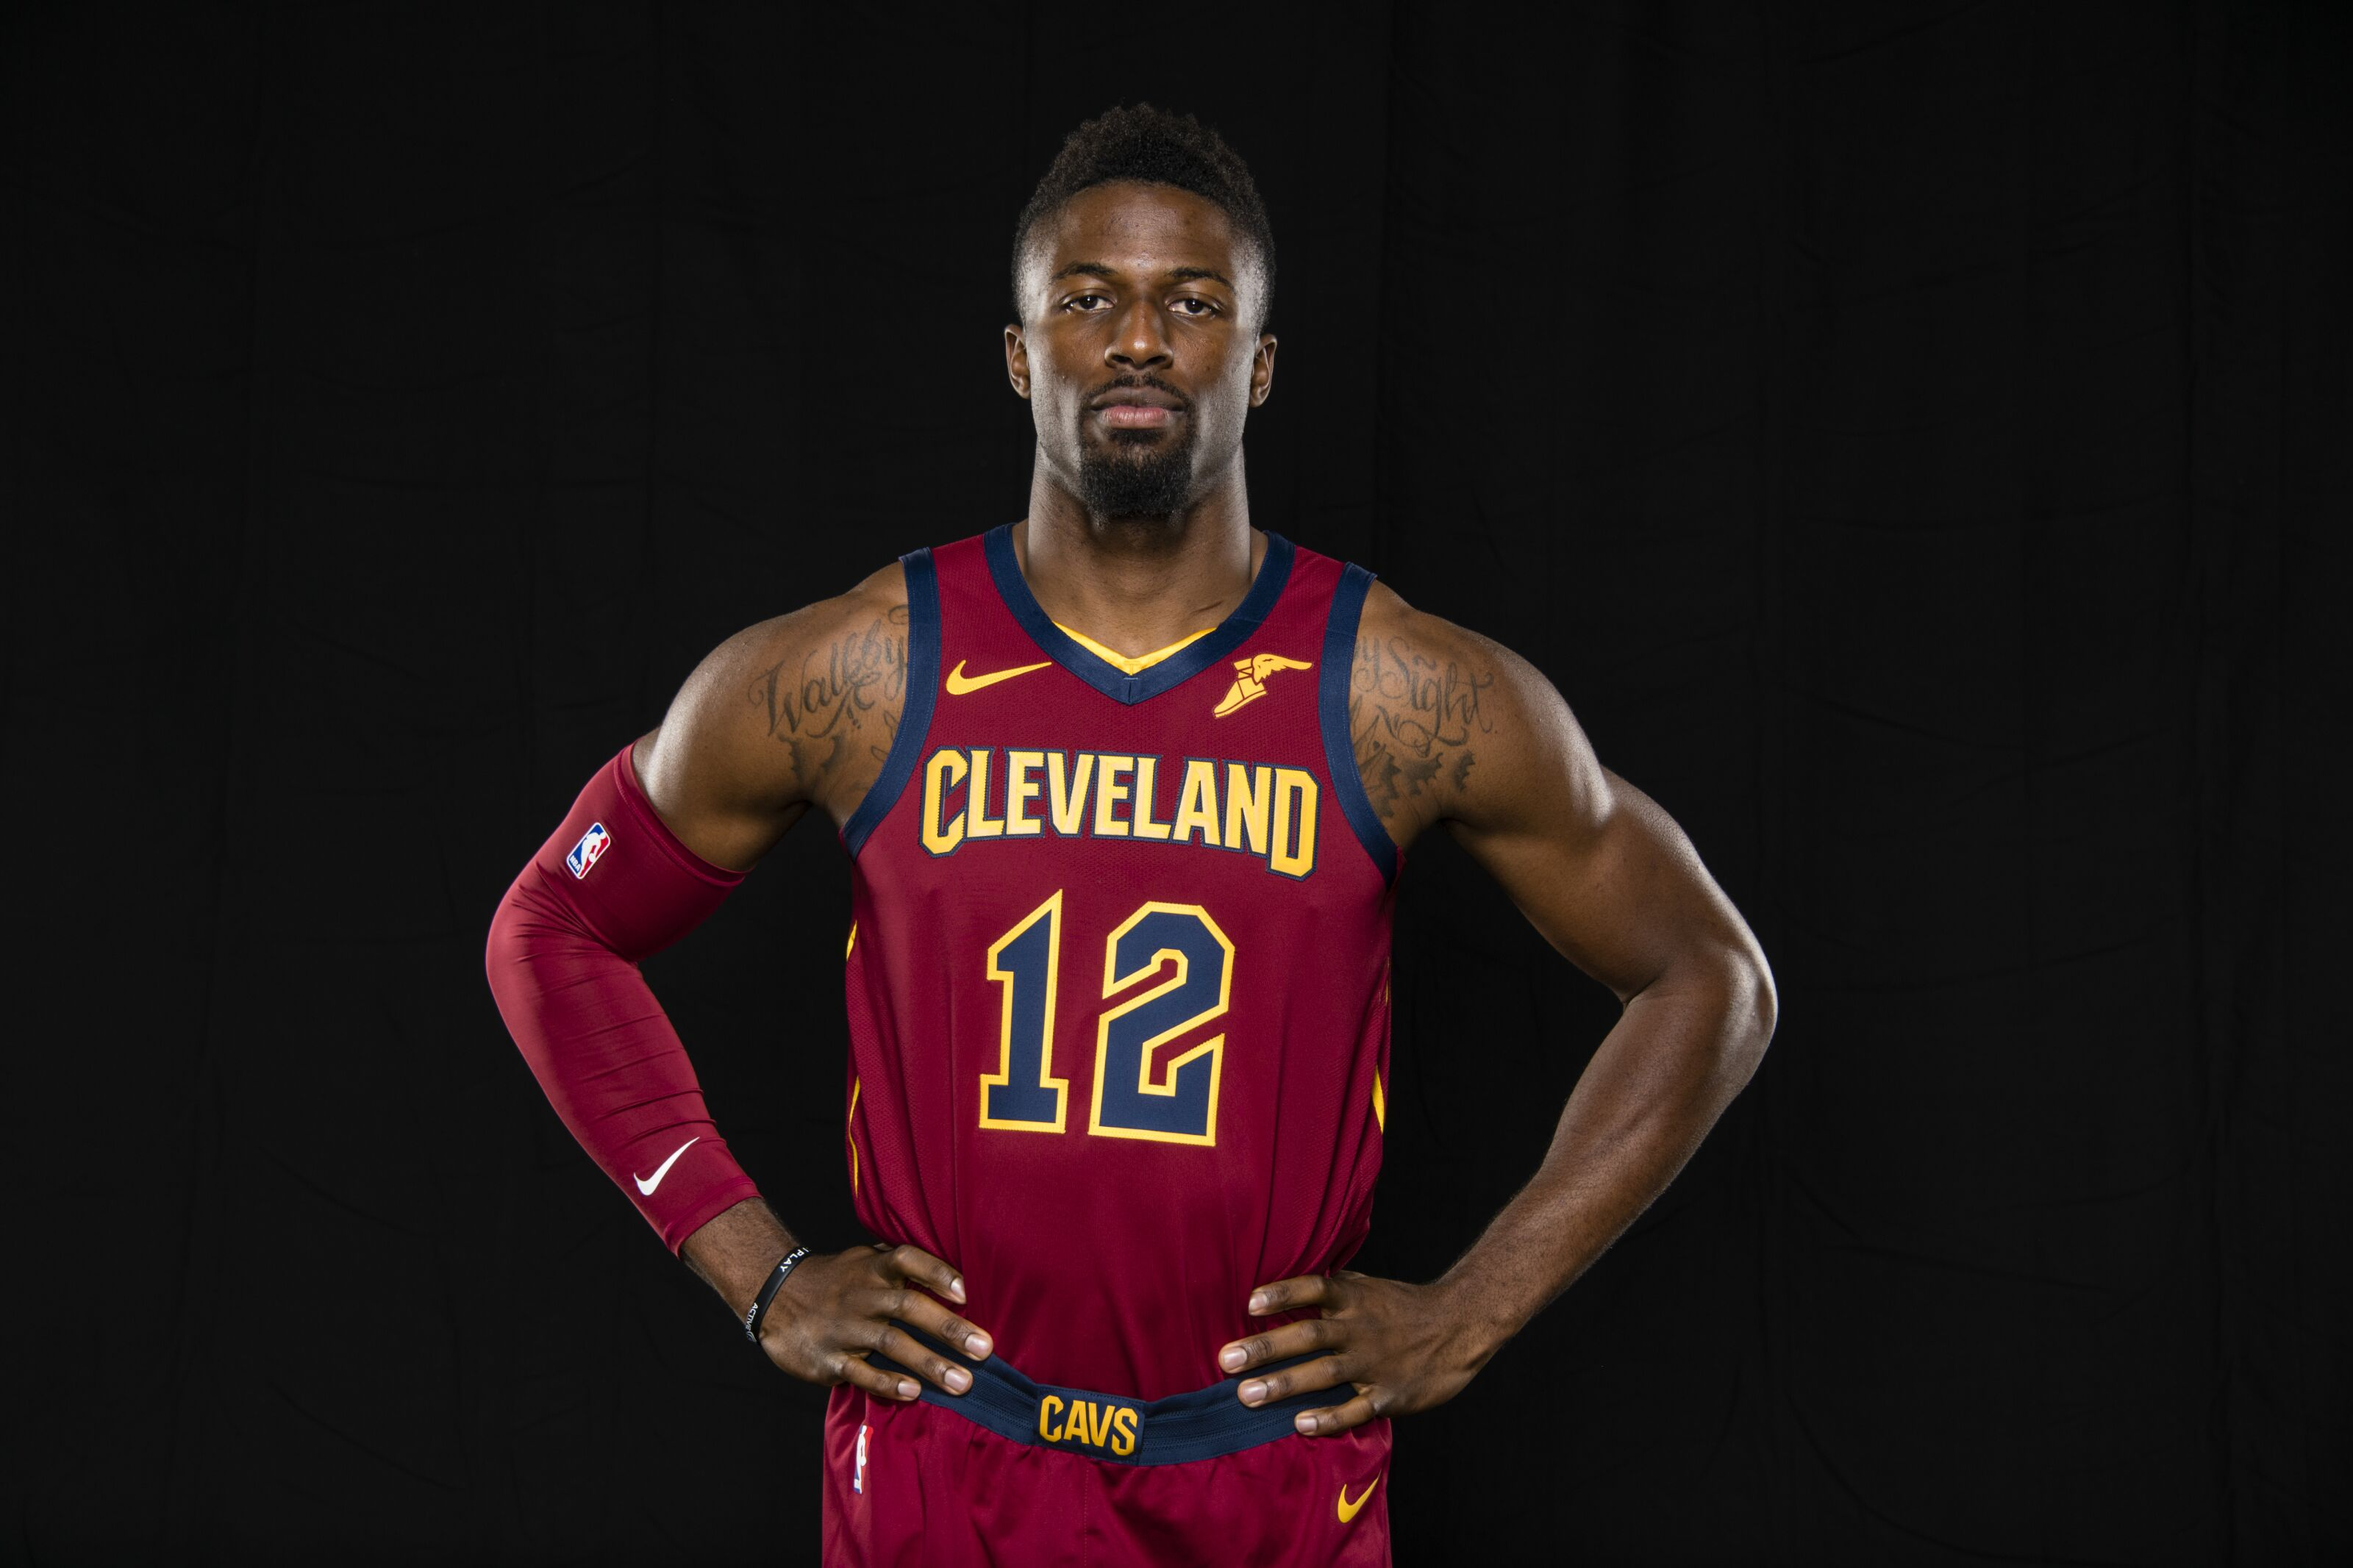 Cleveland Cavaliers: It's easy to see why Drew said he always liked Nwaba